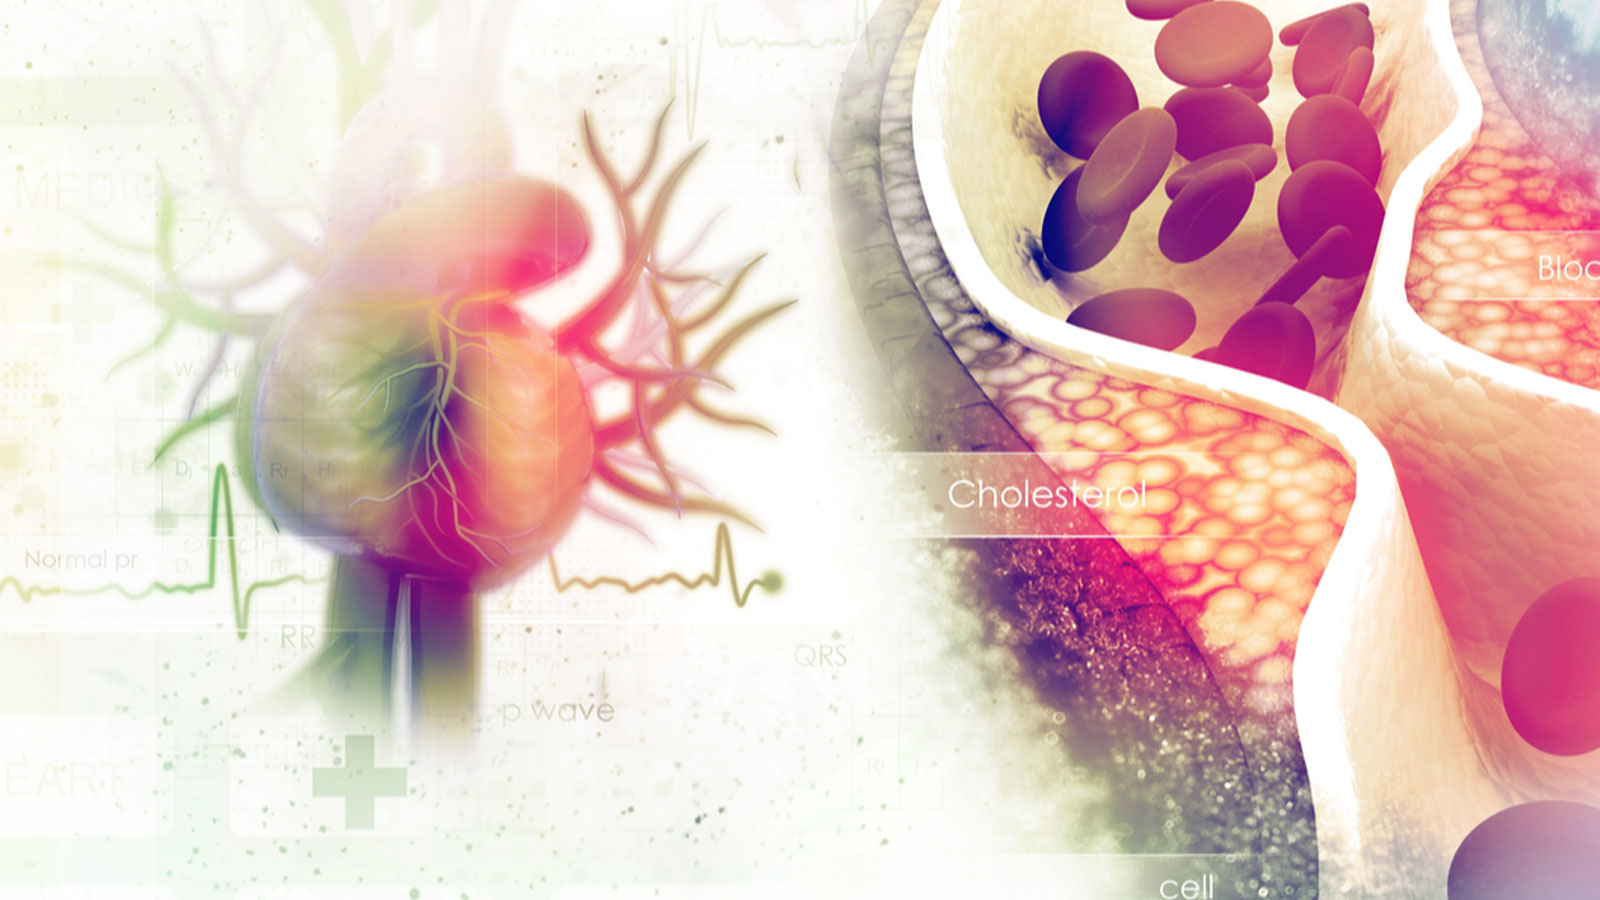 truth-about-cholesterol-heart-diseases-and-saturated-fats